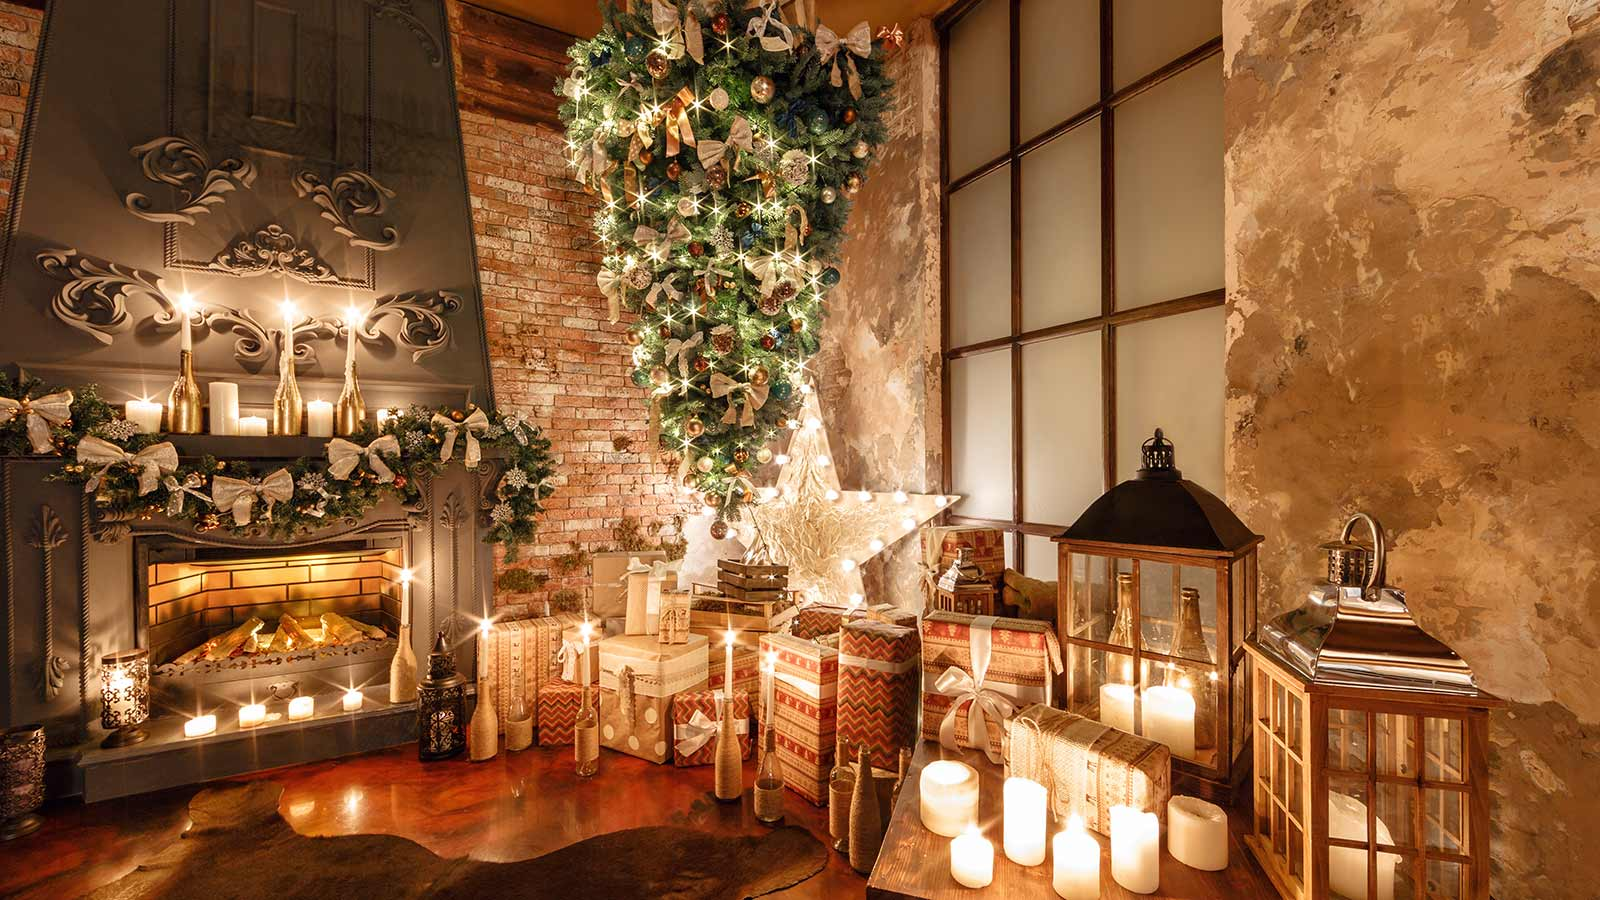 A beautifully decorated room with rustic decor and a large Christmas tree hanging upside down from the ceiling.